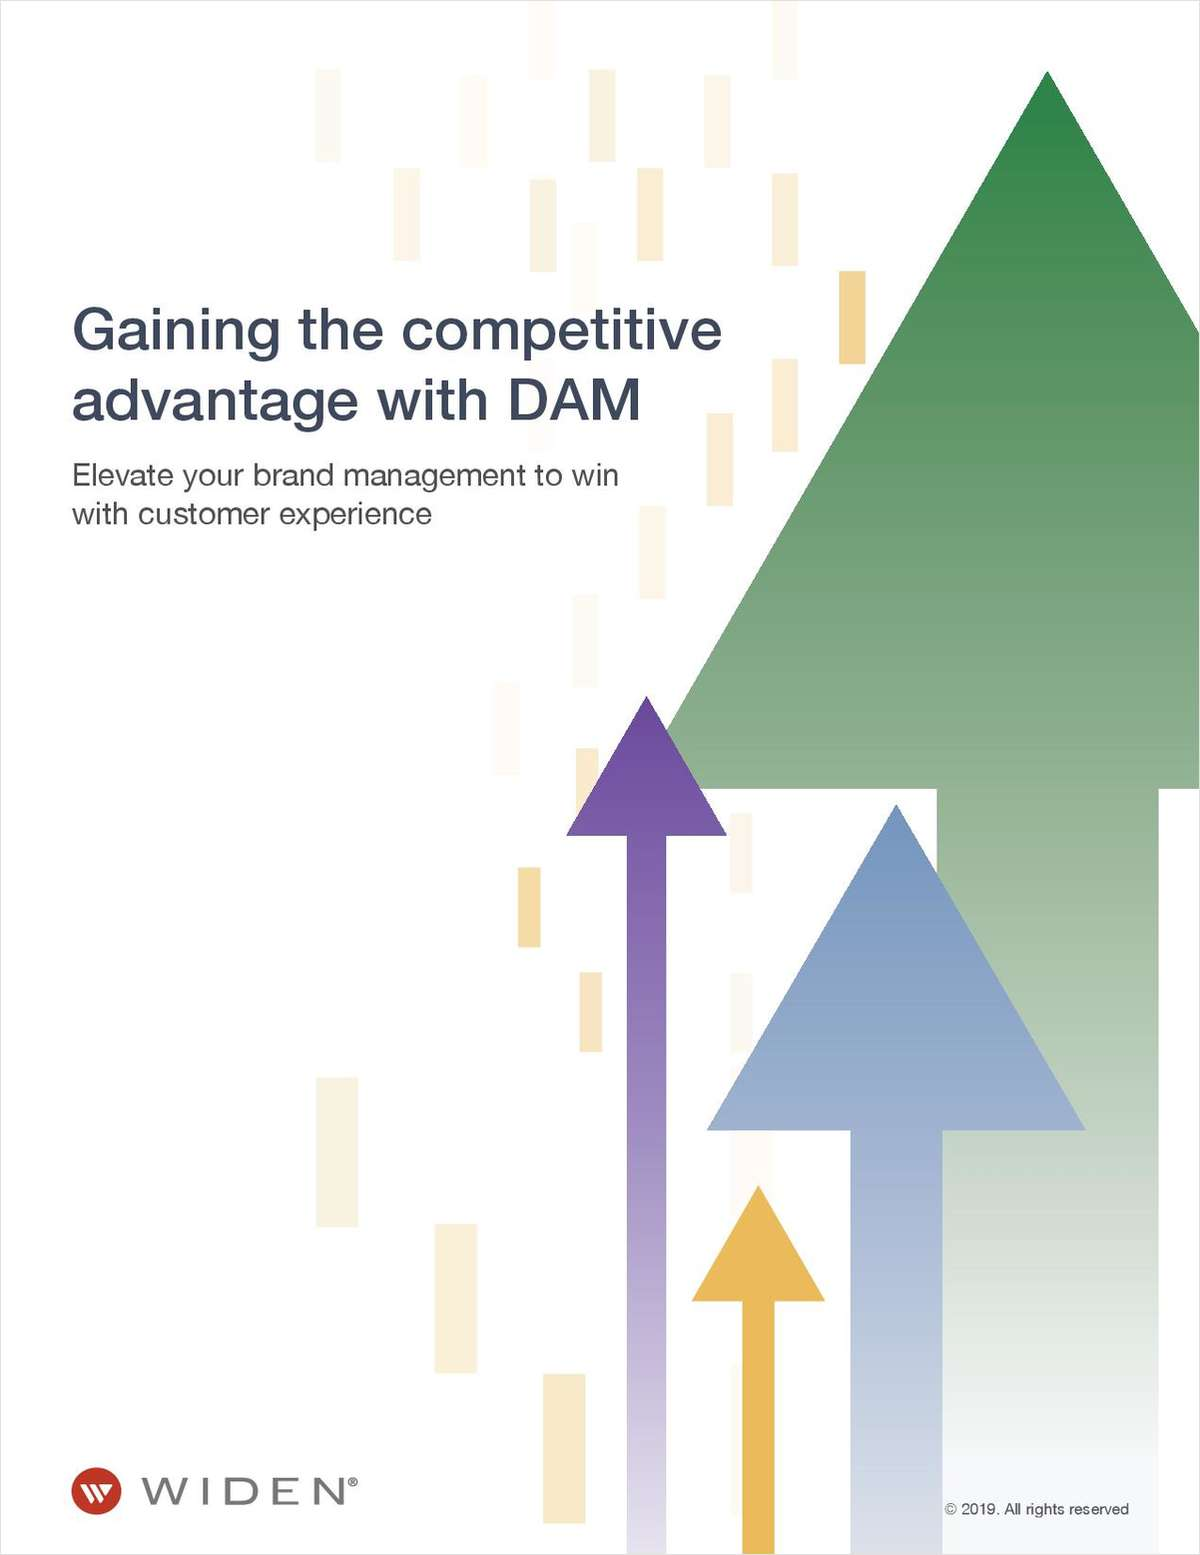 Gaining the Competitive Advantage with DAM